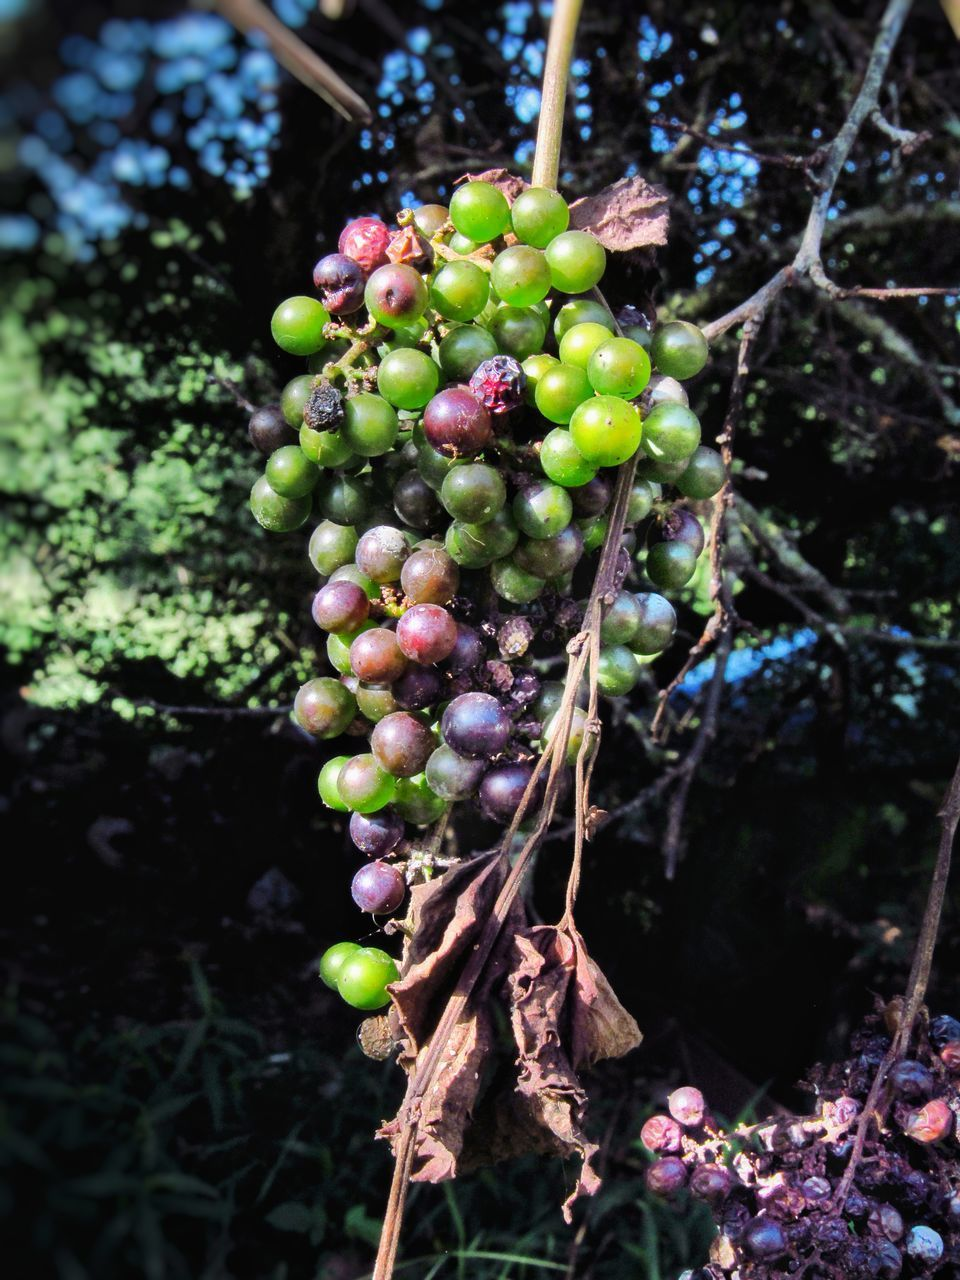 food and drink, food, fruit, growth, healthy eating, plant, freshness, tree, nature, close-up, no people, day, green color, agriculture, selective focus, hanging, focus on foreground, leaf, plant part, wellbeing, outdoors, ripe, plantation, winemaking